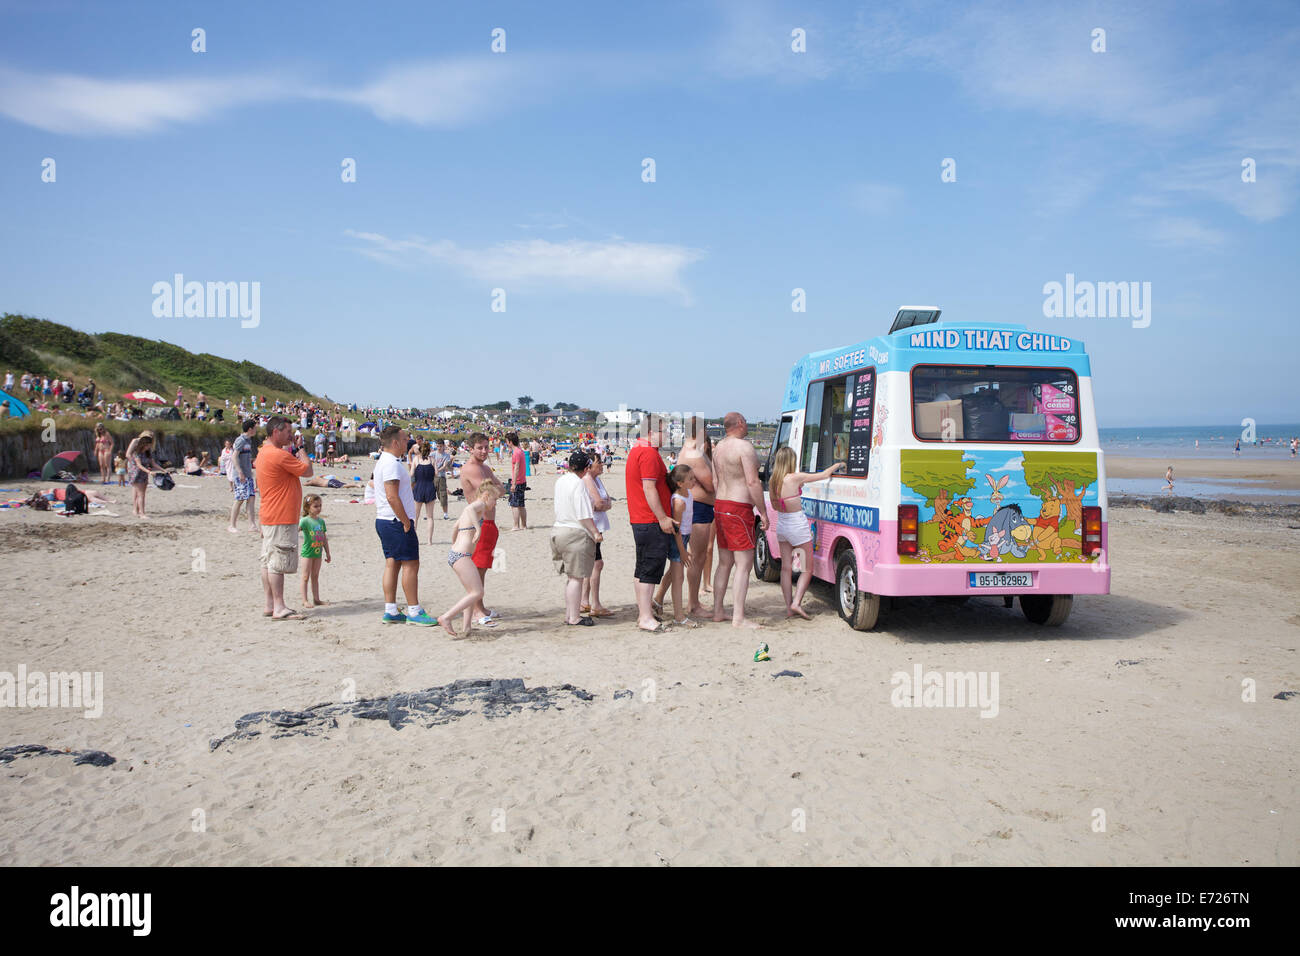 People queuing for ice cream from an ice cream van on the beach at Portmarnock in Dublin, Ireland - Stock Image